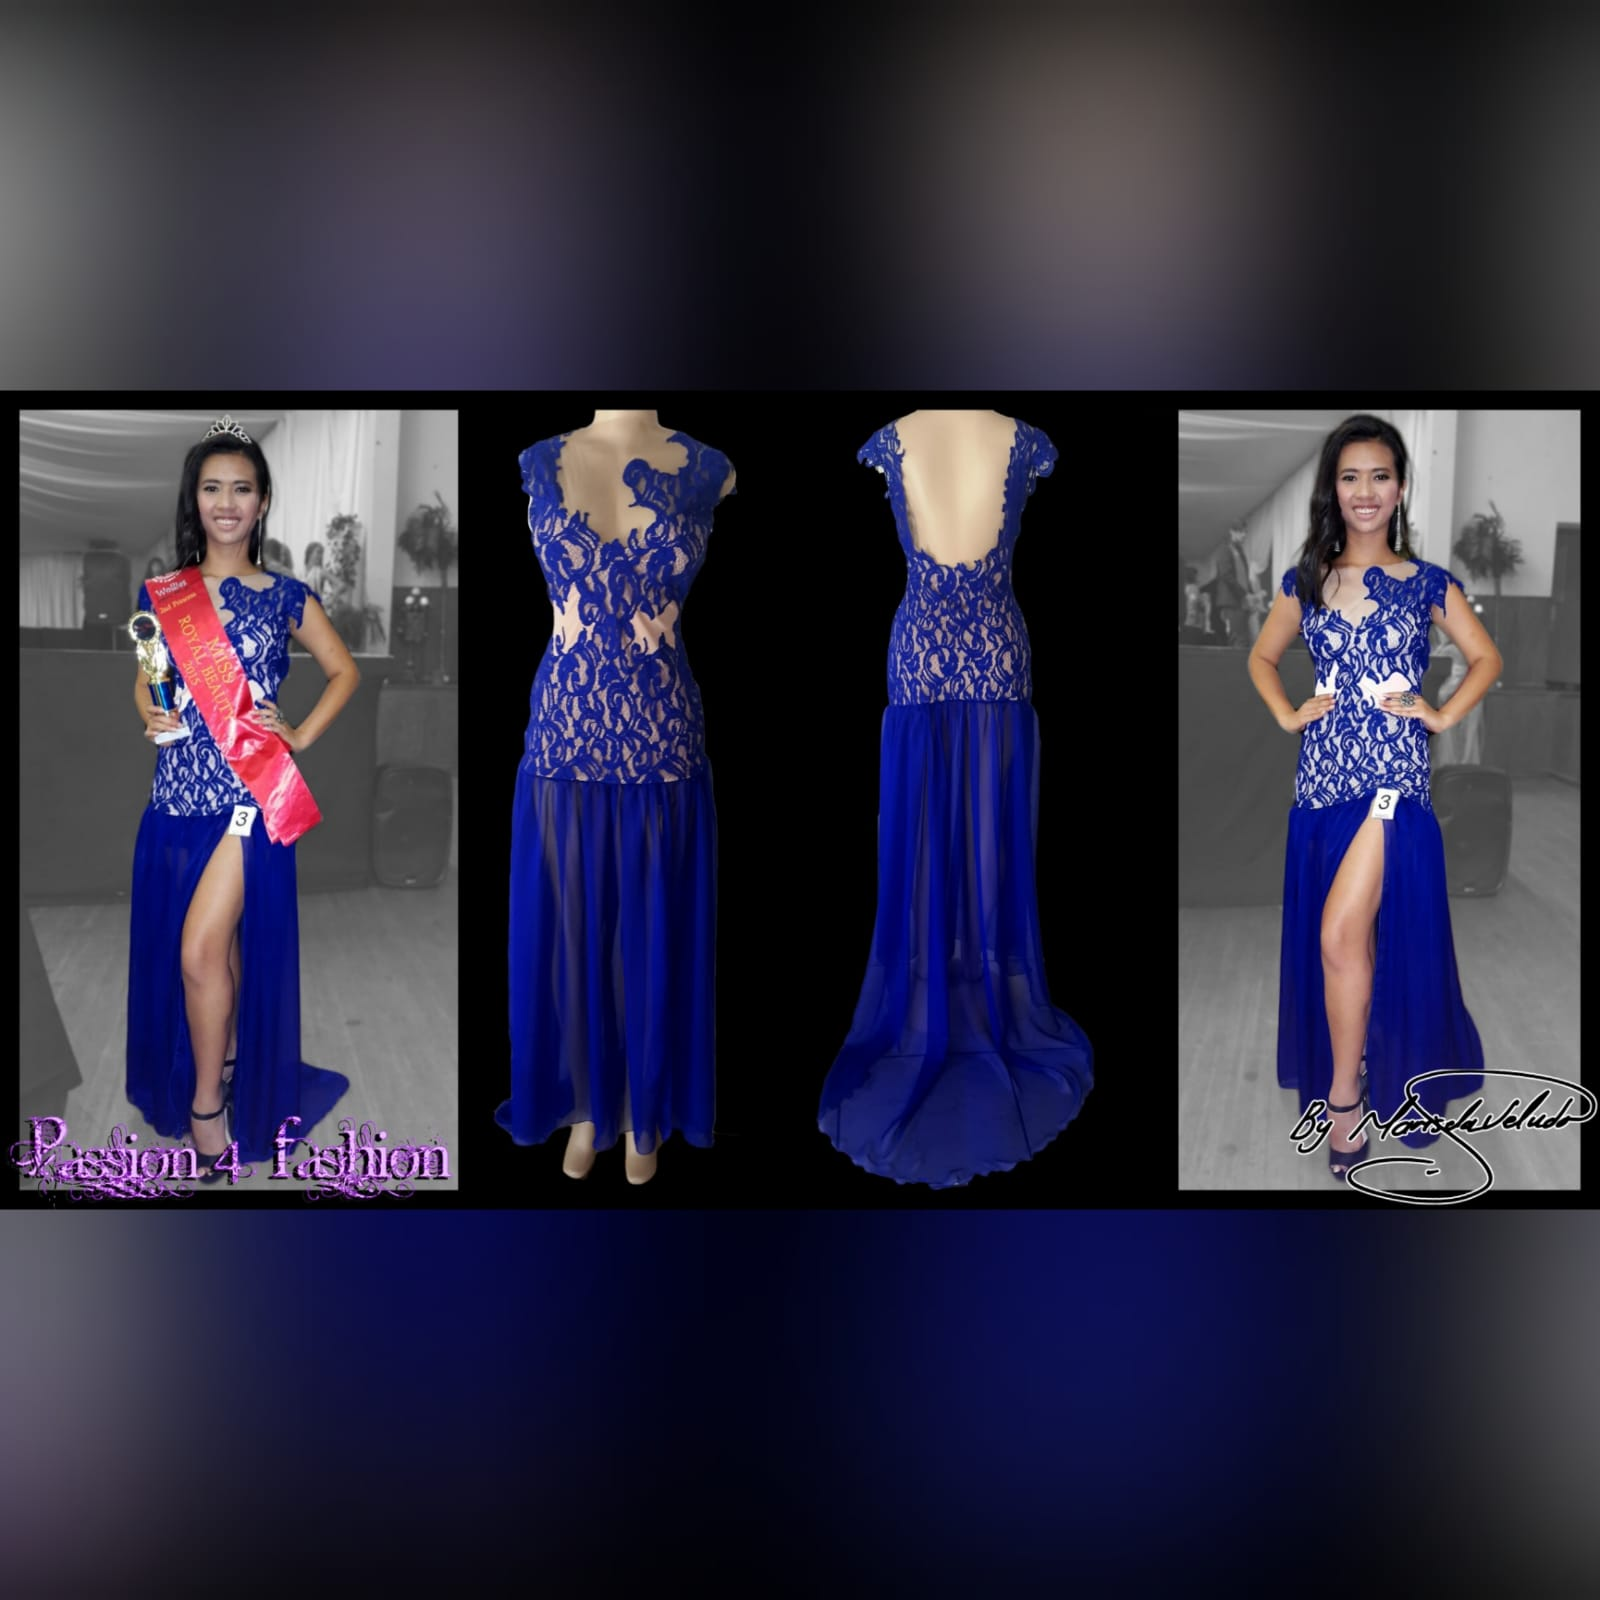 Royal blue pageant evening dress 6 royal blue pageant evening dress, with a lace bodice lined in nude, with a sheer gathered chiffon bottom with high slit, and a rounded open back.